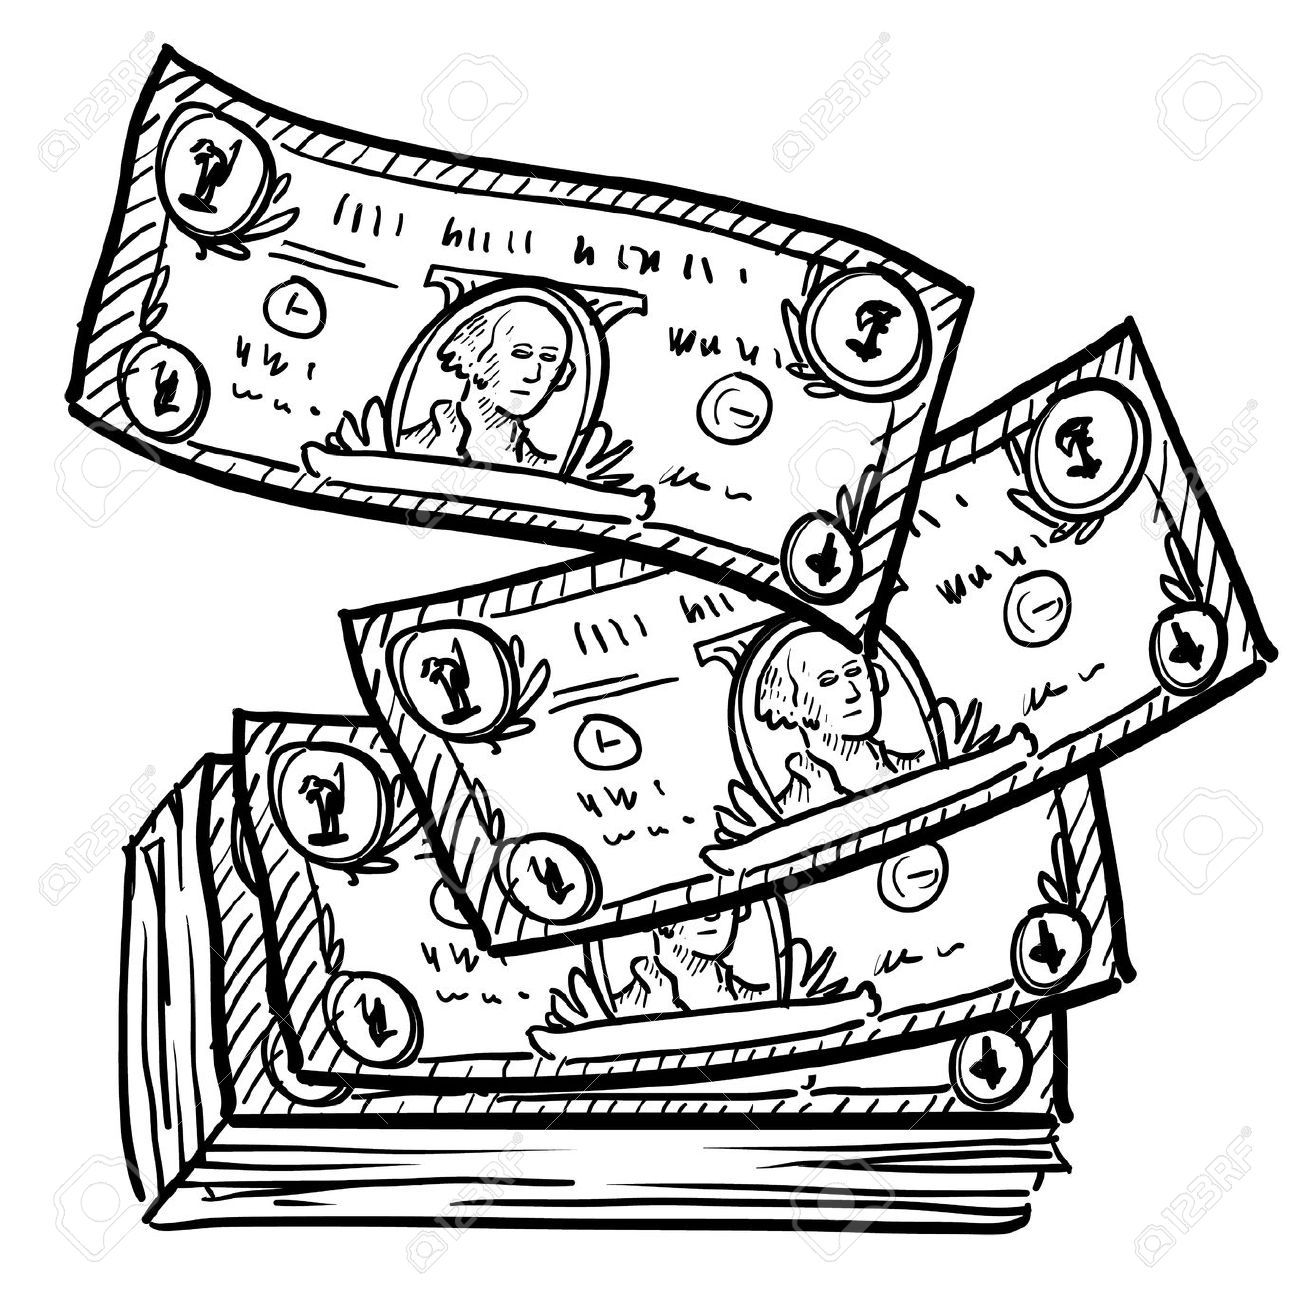 Dollar clipart black and white 3 » Clipart Portal.